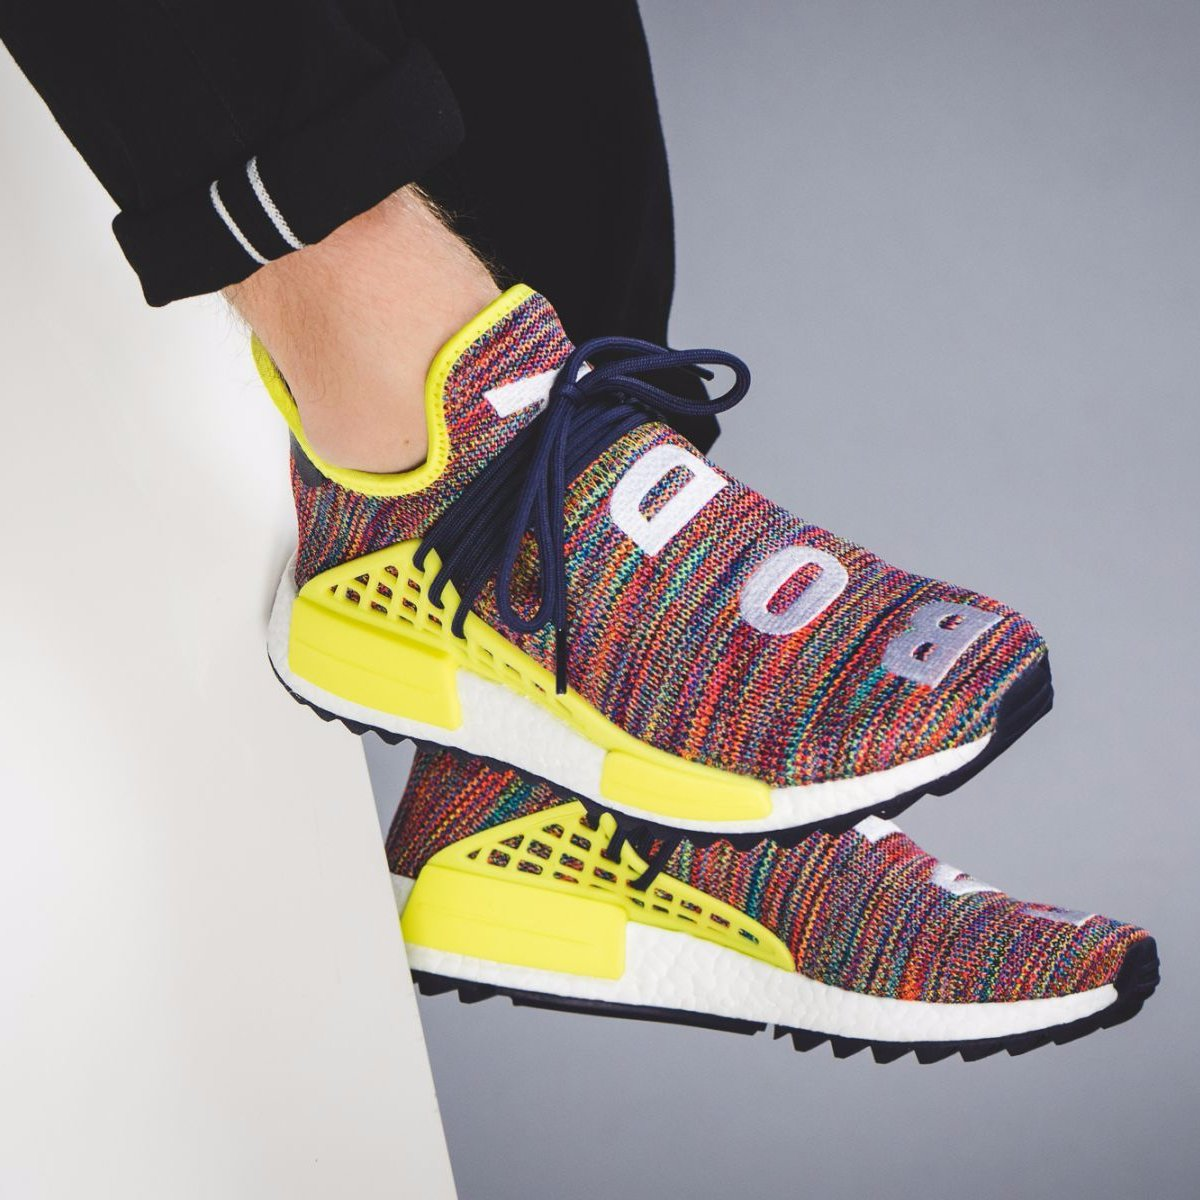 adidas nmd human race trail pharrell williams